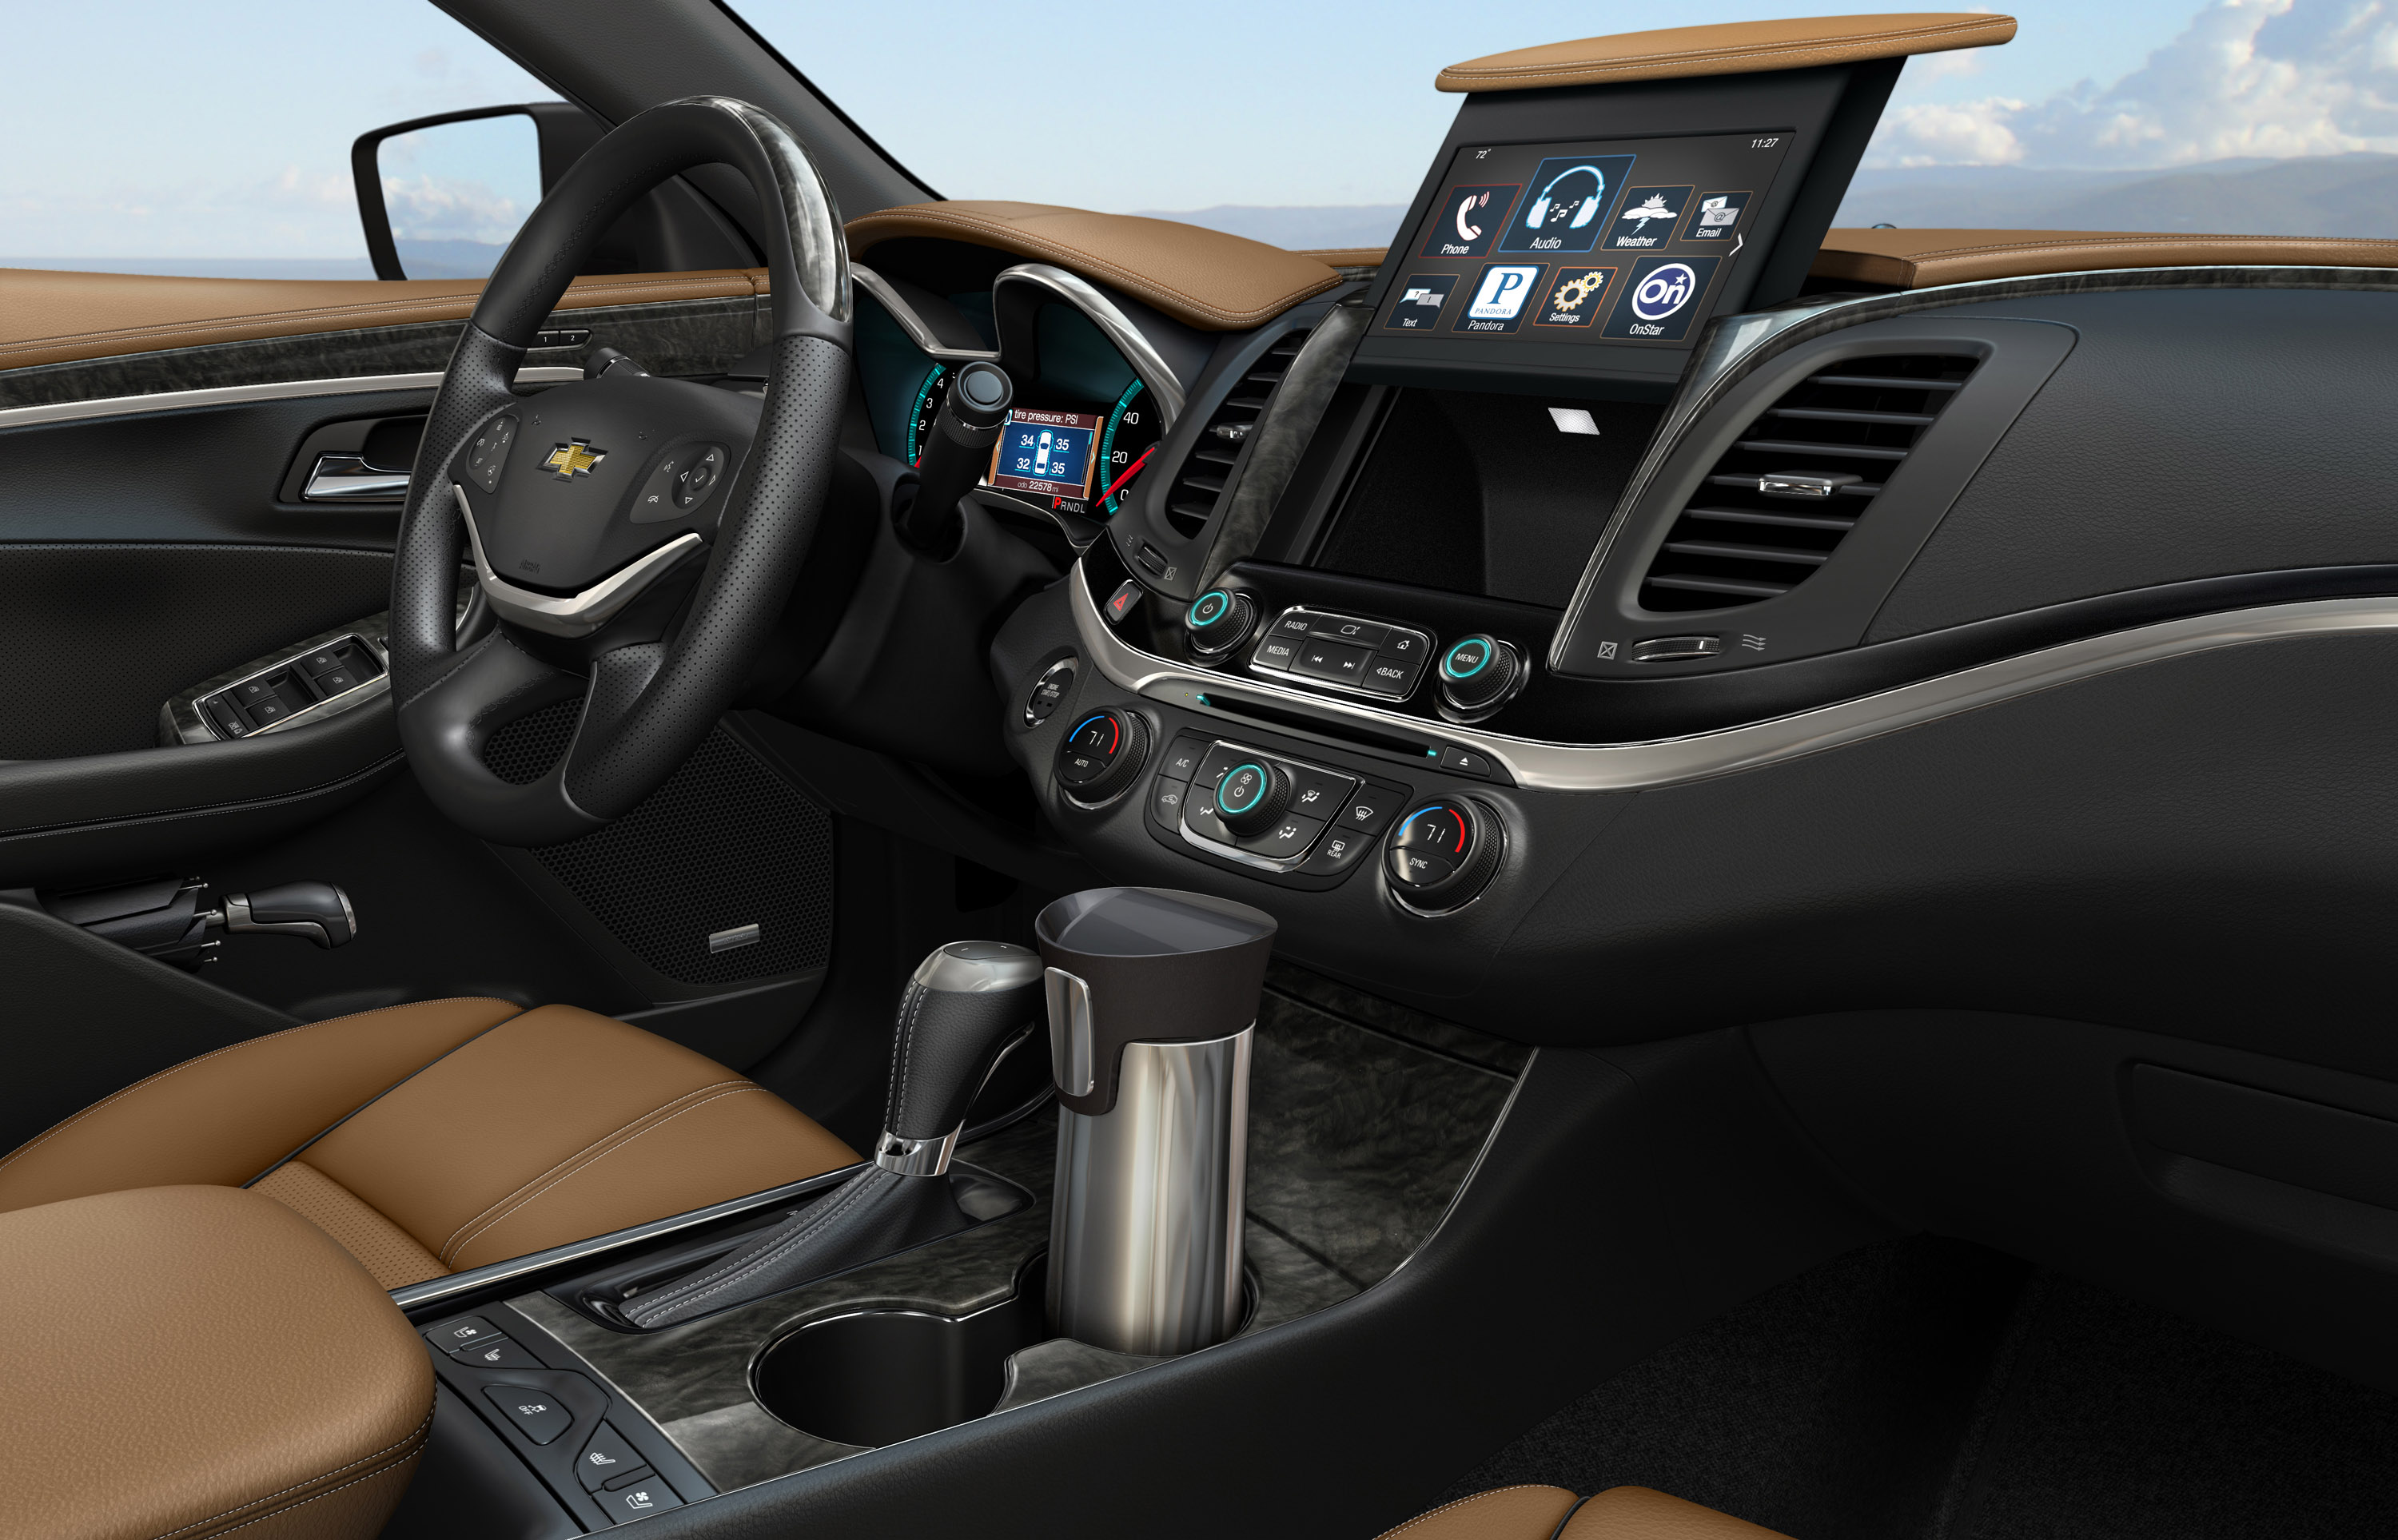 2014 chevrolet impala interior design pinterest chevrolet impala impalas and chevrolet